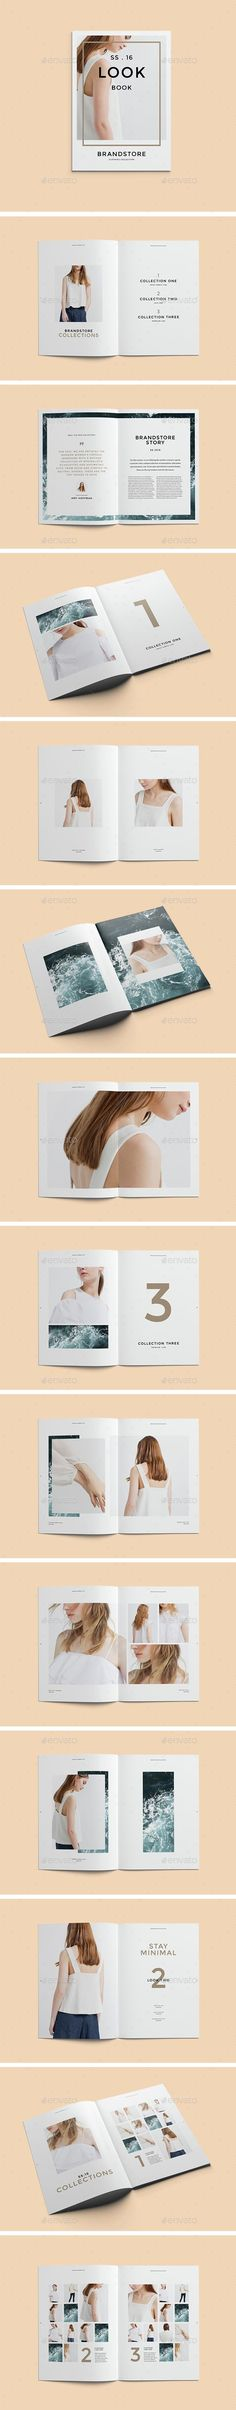 Fashion Lookbook  — InDesign Template #jewelry lookbook #fashion boutique • Download ➝ https://graphicriver.net/item/fashion-lookbook/15042234?ref=pxcr